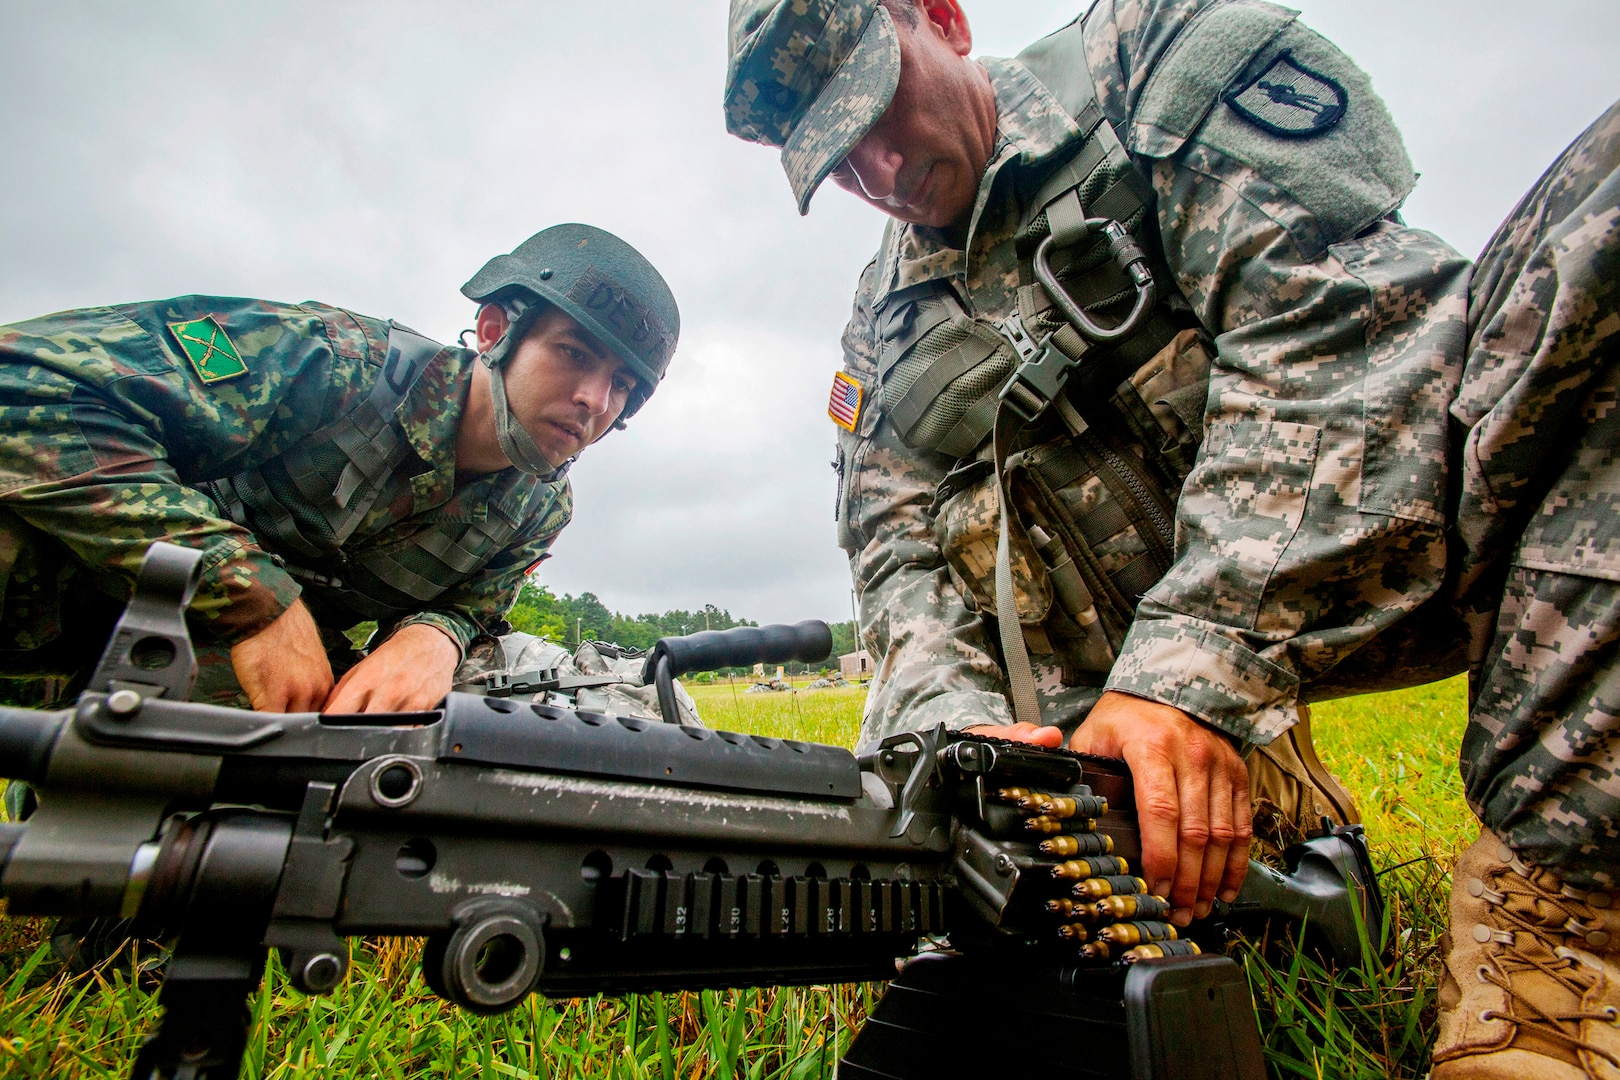 Sgt. 1st Class Harry R. Martinez, right, with the New Jersey Army National Guard, demonstrates how to load an ammunition drum on a M249 squad automatic weapon to Albanian Officer Candidate Endri Deda while training at Joint Base McGuire-Dix-Lakehurst, N.J. The New Jersey National Guard and Albania are paired together as part of the National Guard Bureau's State Partnership Program, which links National Guard elements with partner nations worldwide. The SPP began with three partnerships in 1993 and now, 25 years later, includes 74 partnerships spanning the globe.